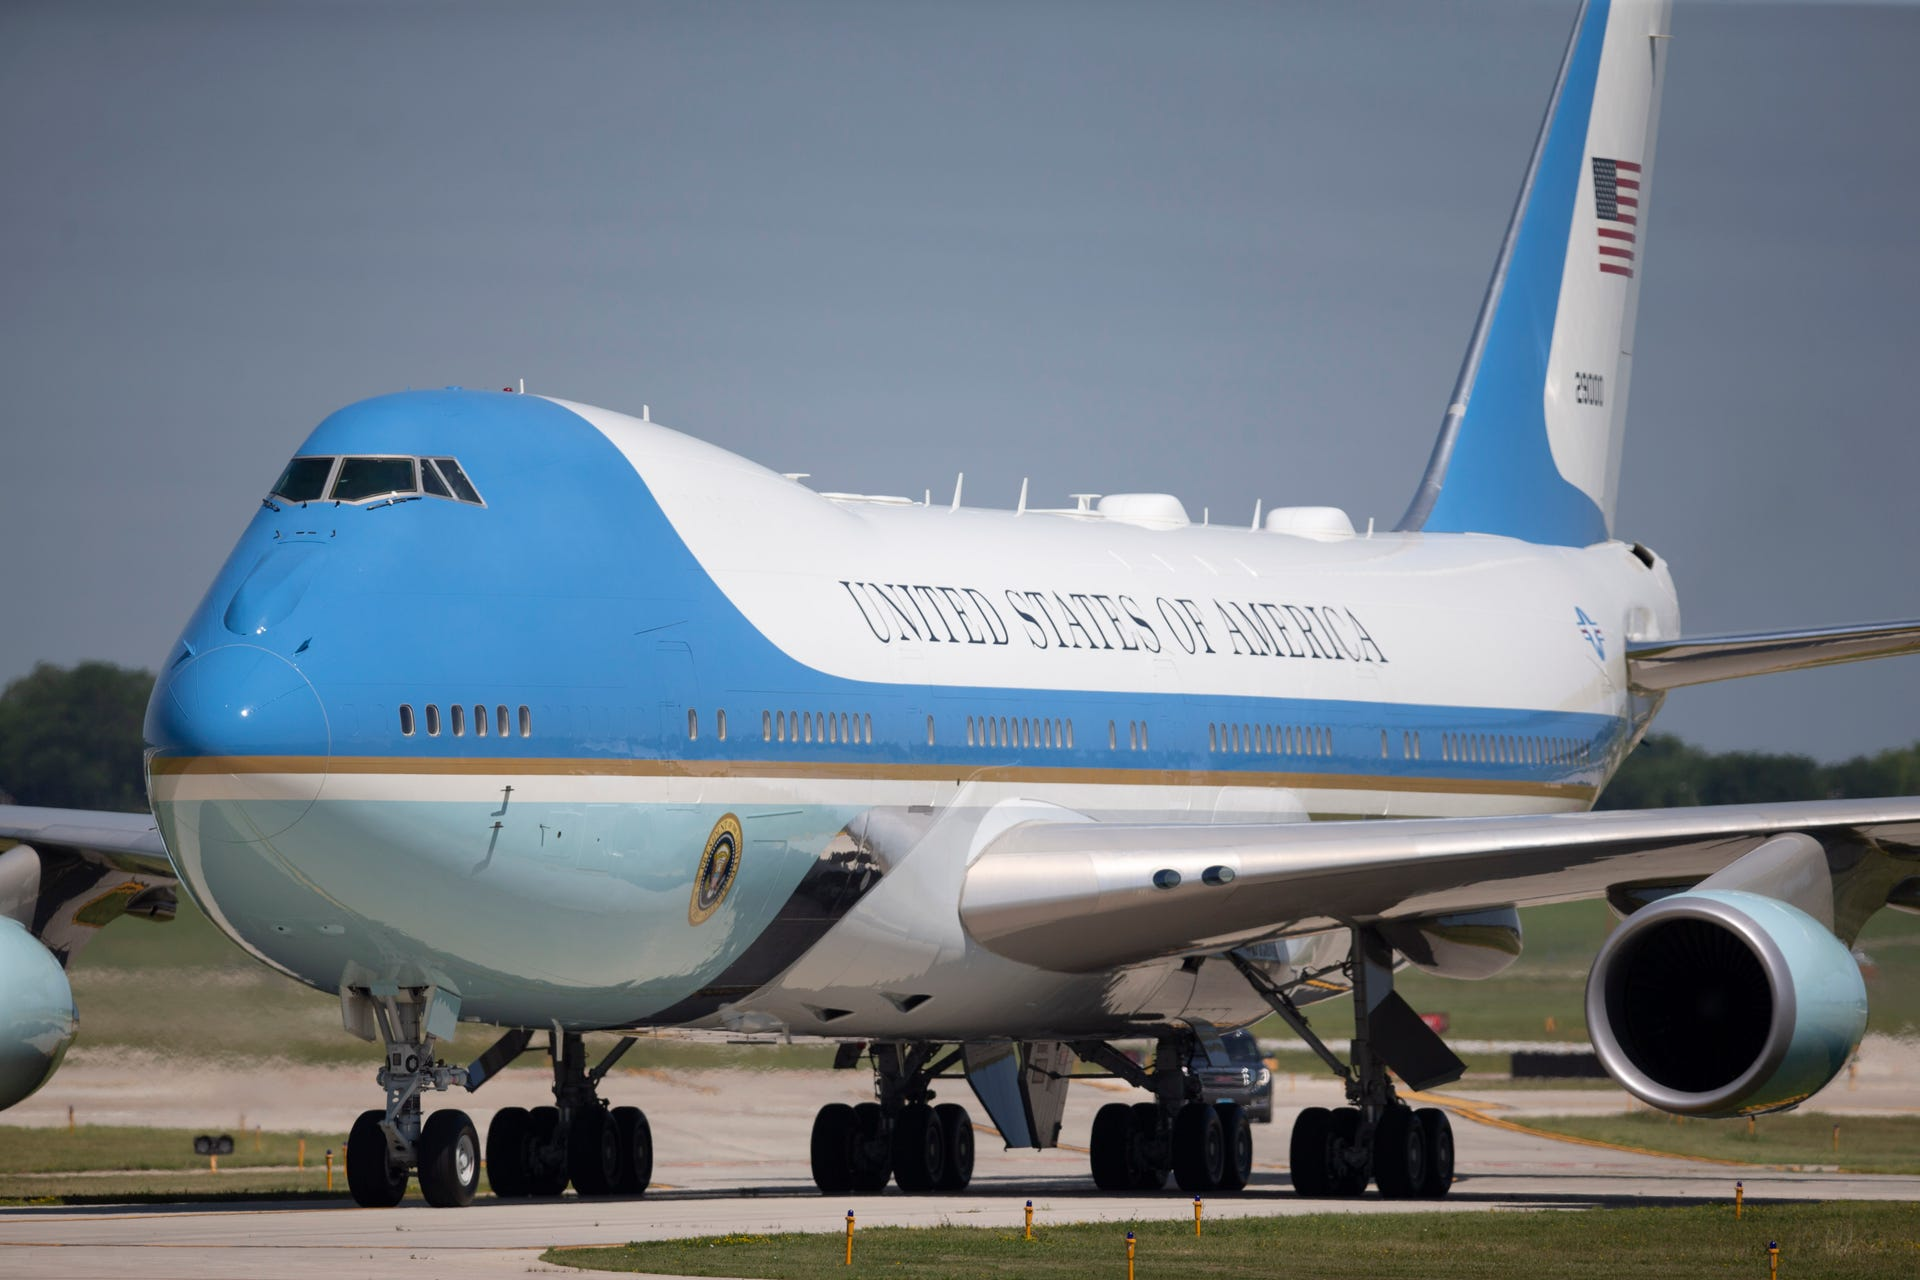 Air Force One lands at the 128th Refueling Wing in Milwaukee.